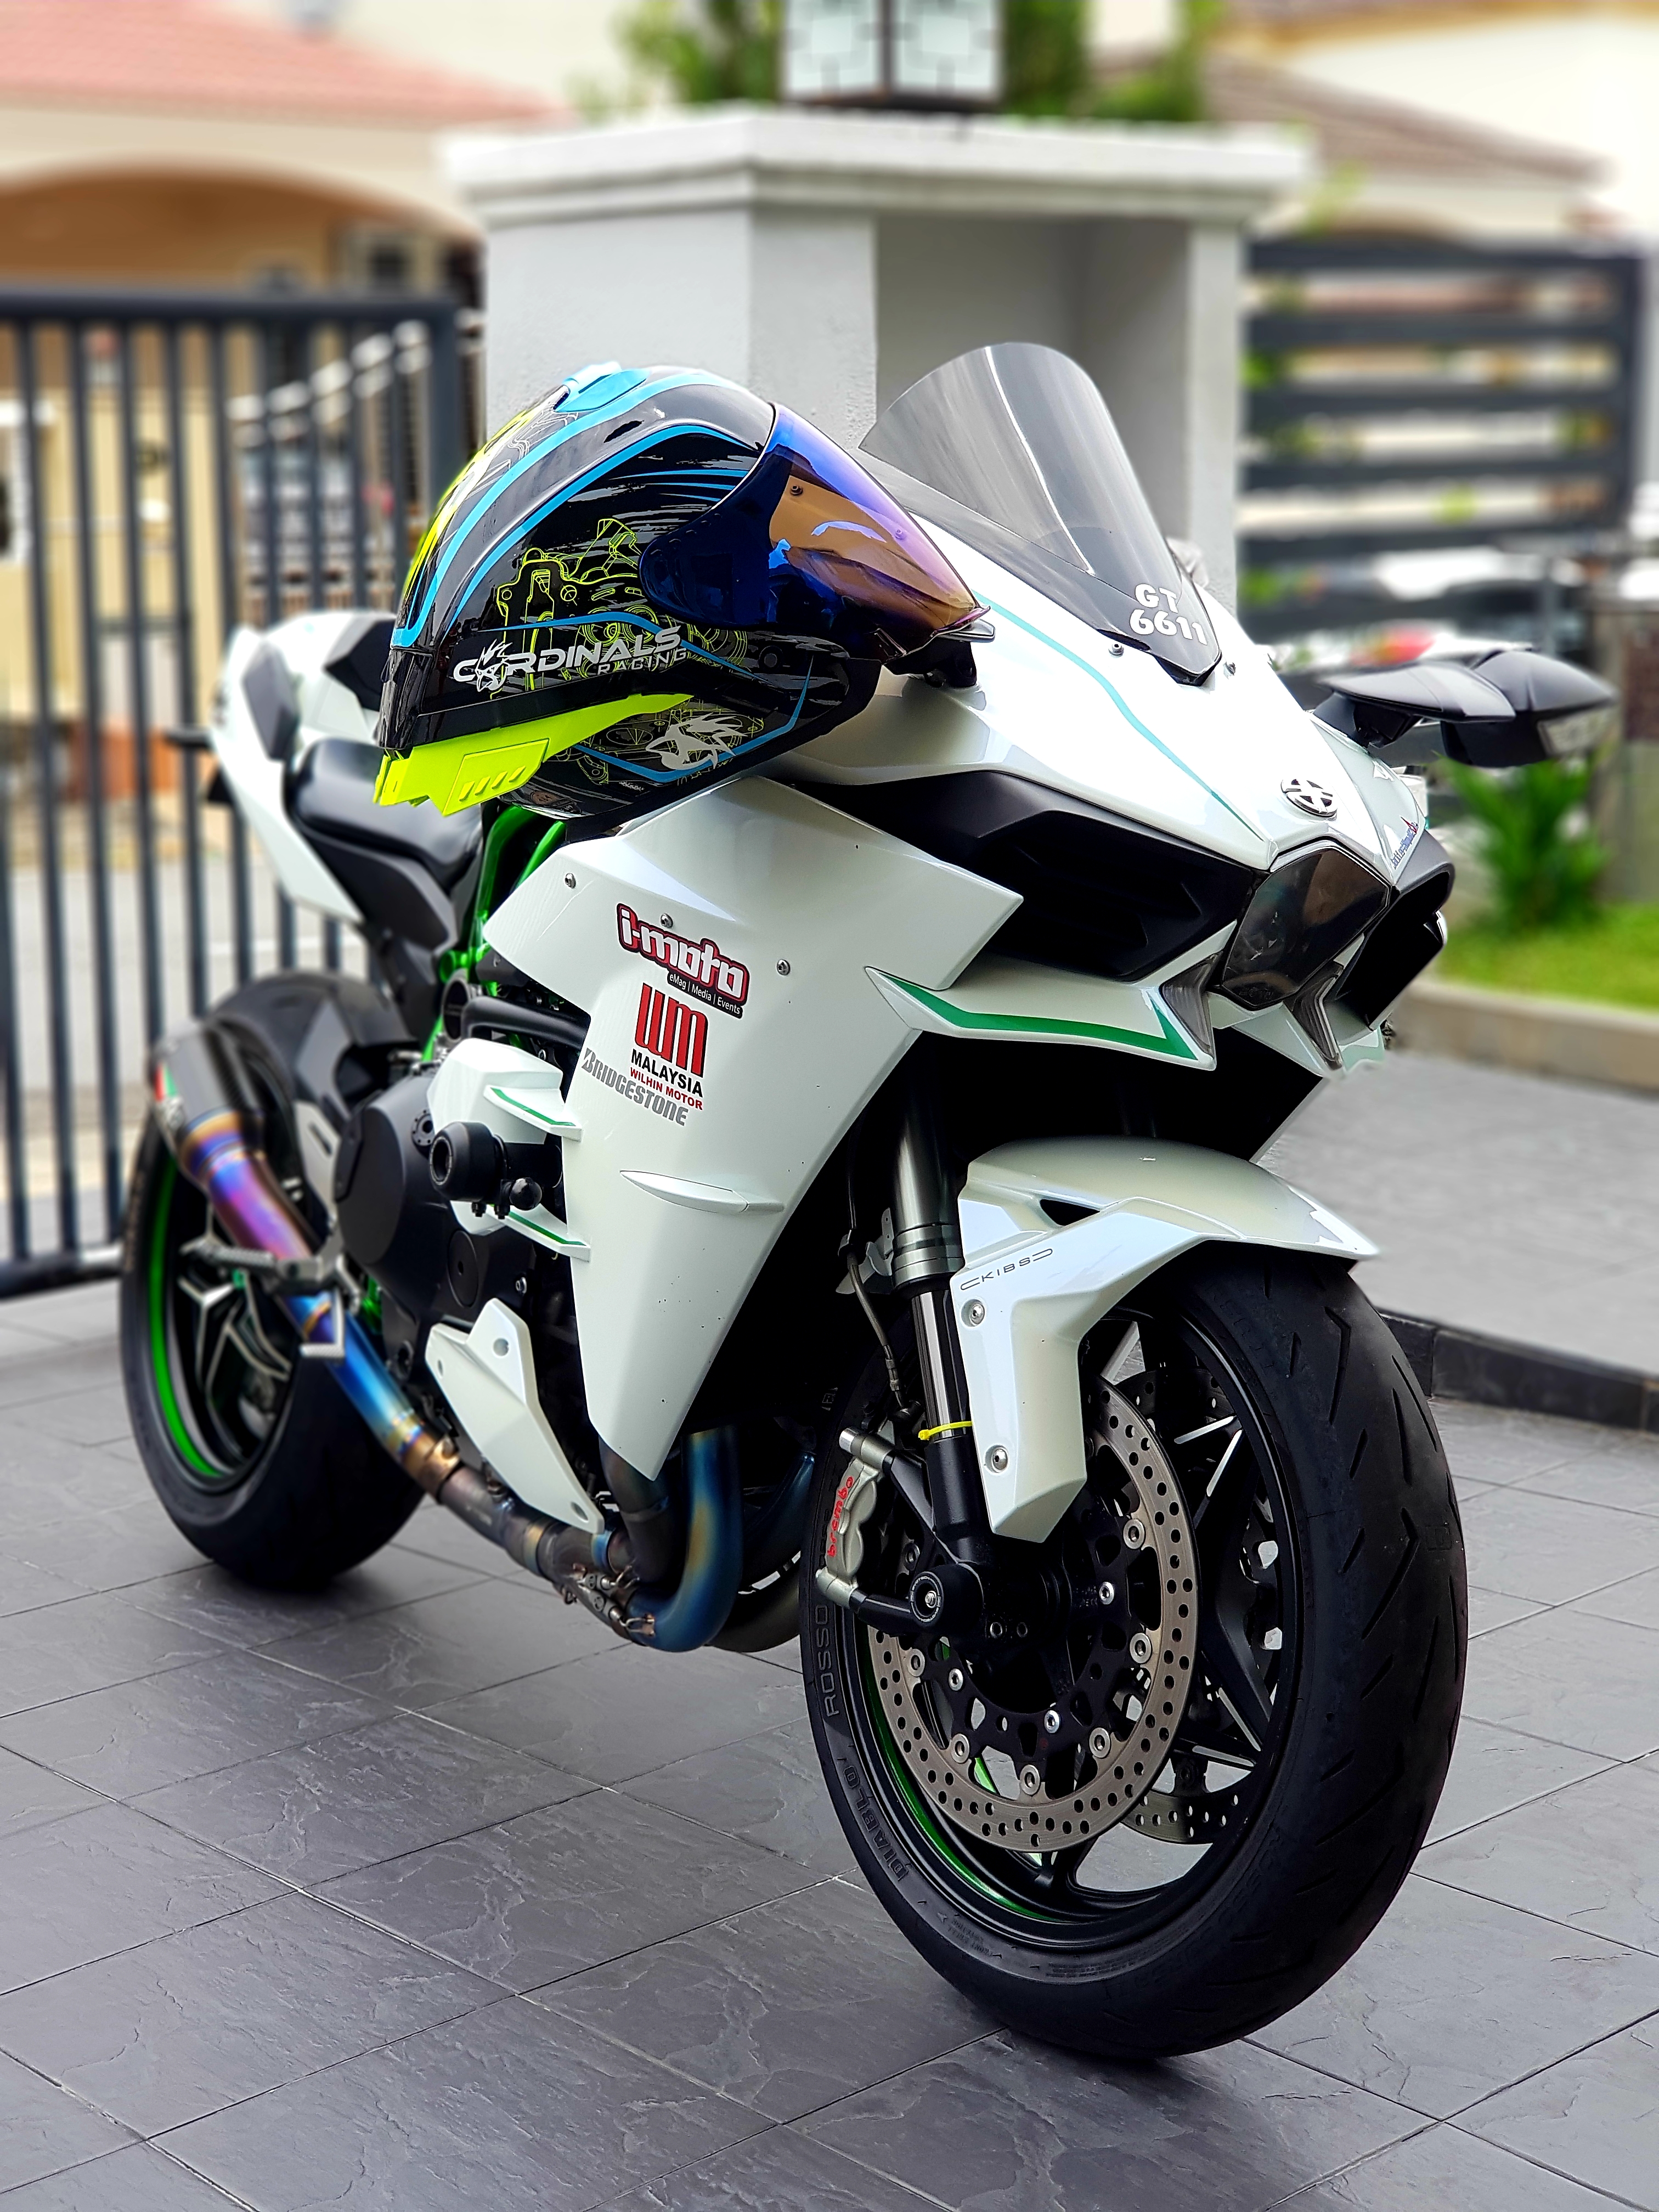 Kawasaki Kx 500 For Sale Used Motorcycles On Buysellsearch